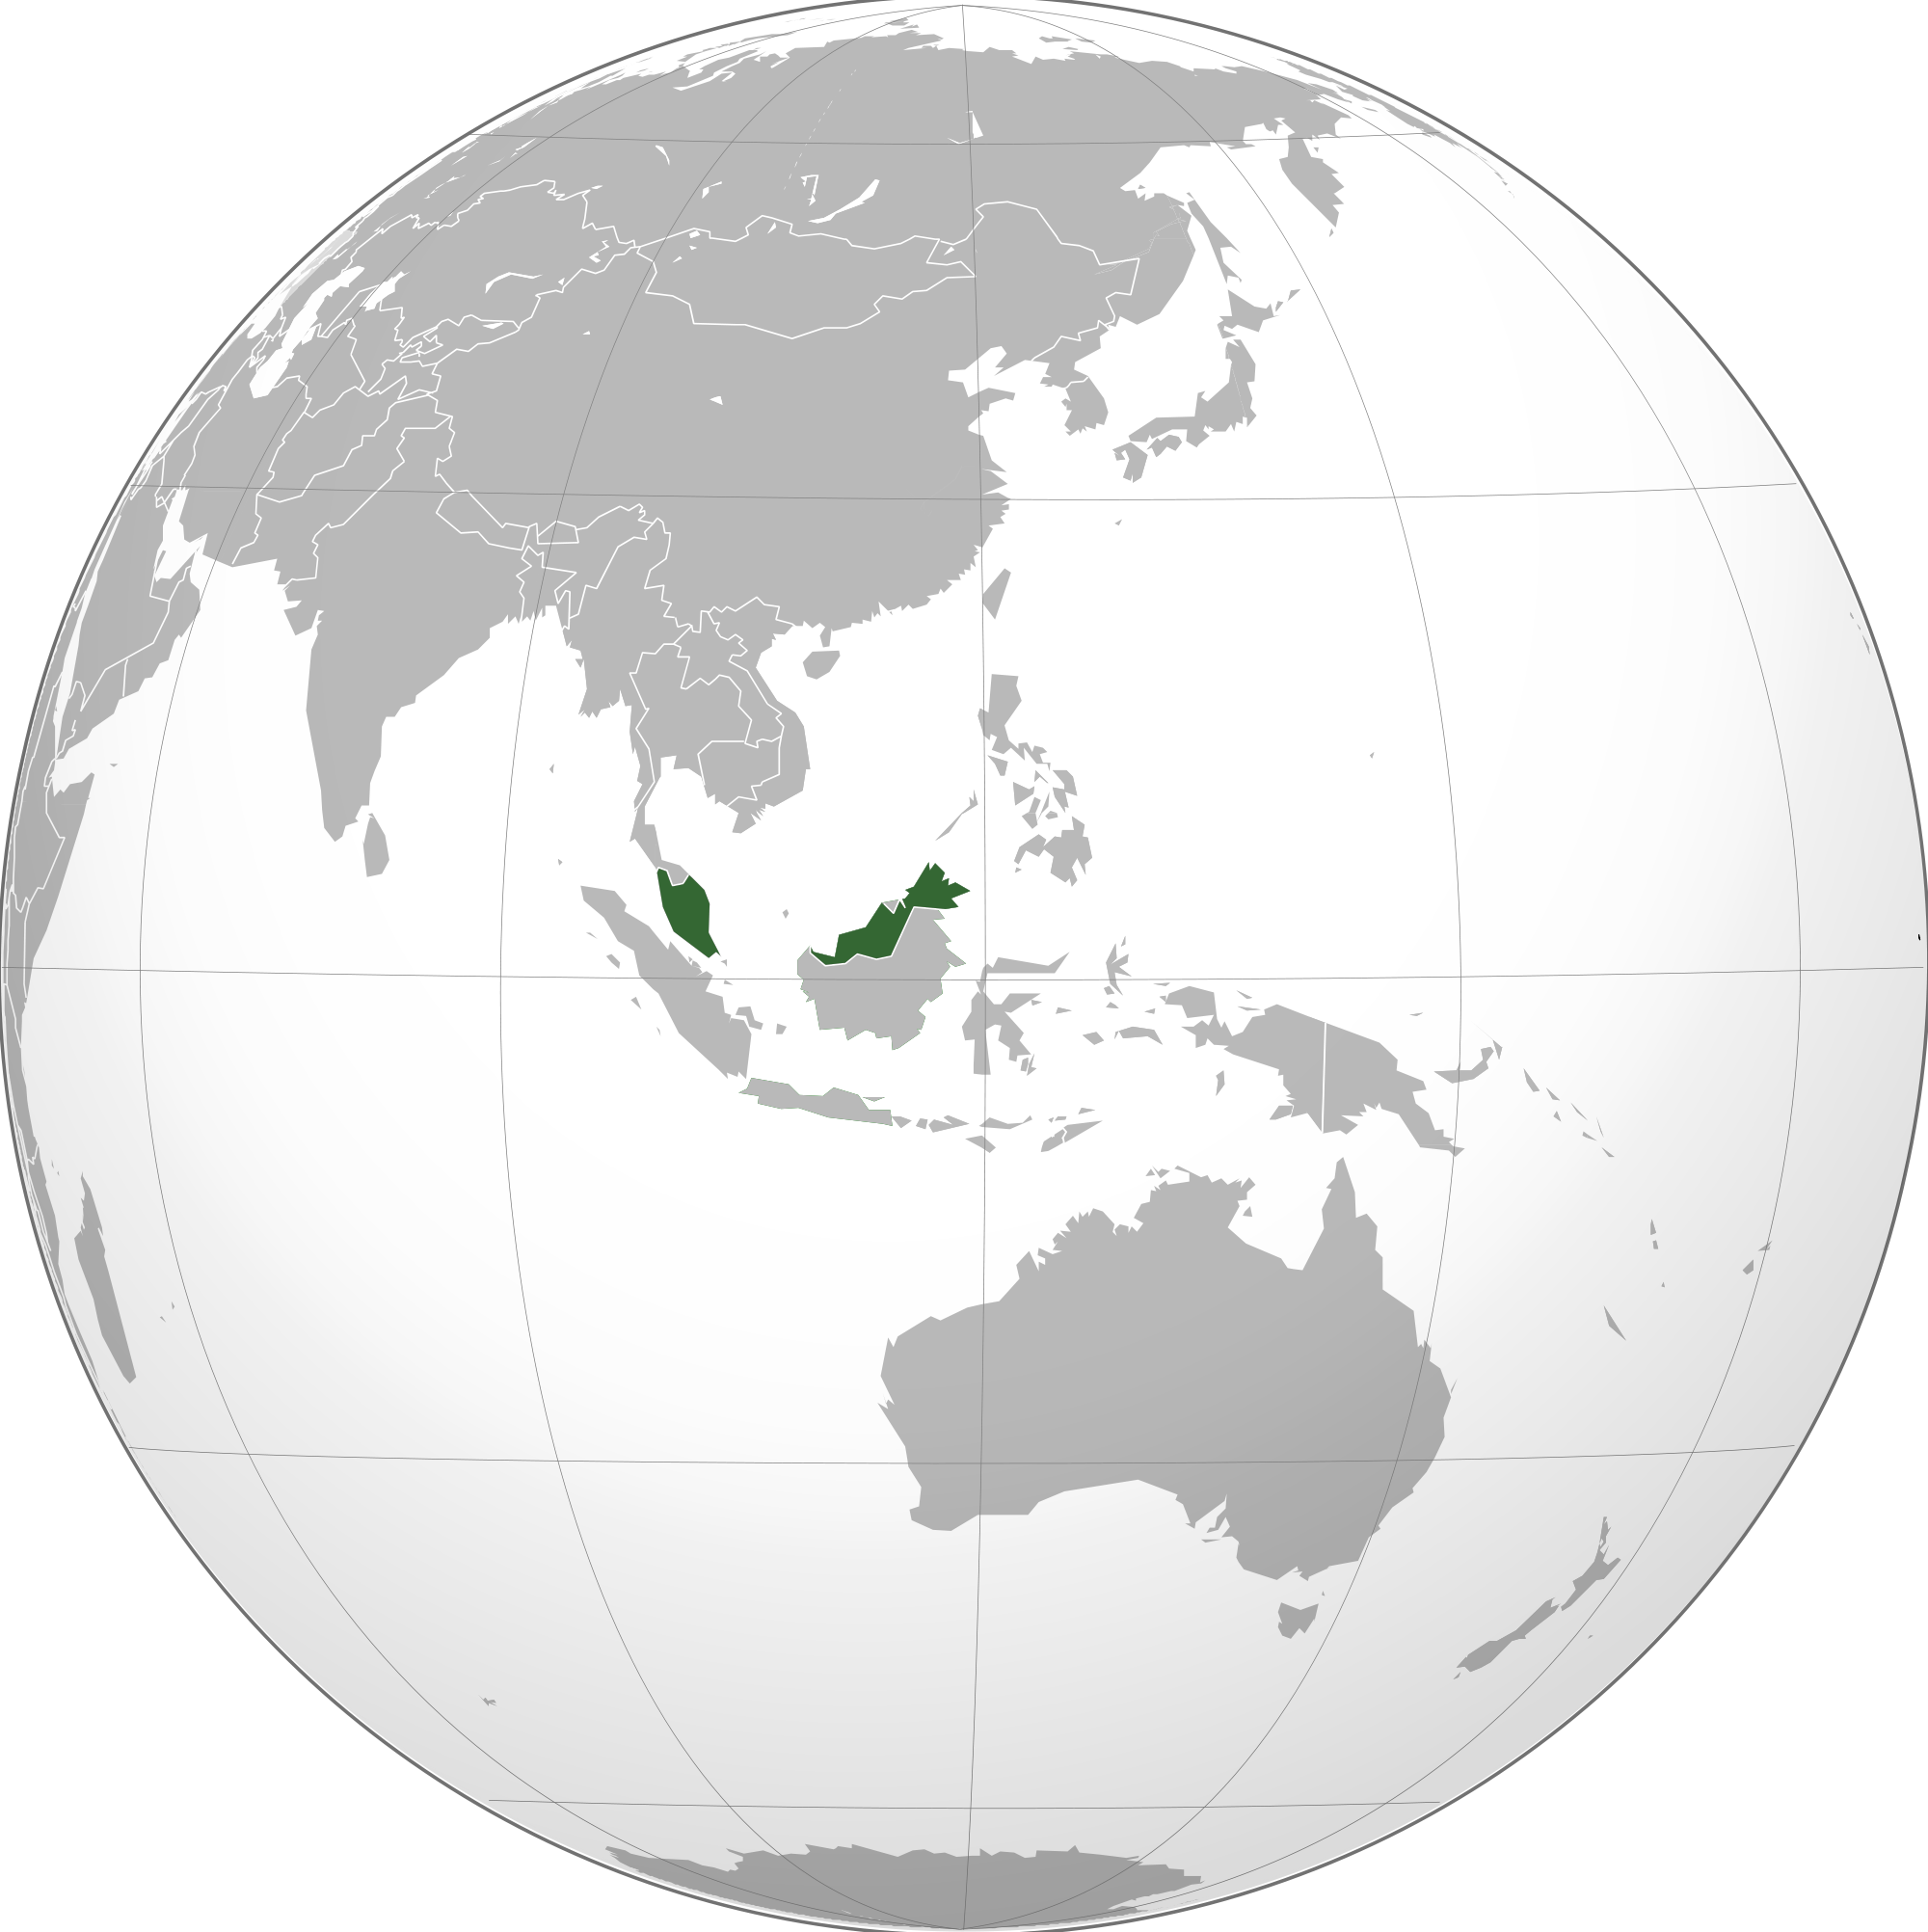 Location of the Malaysia in the World Map